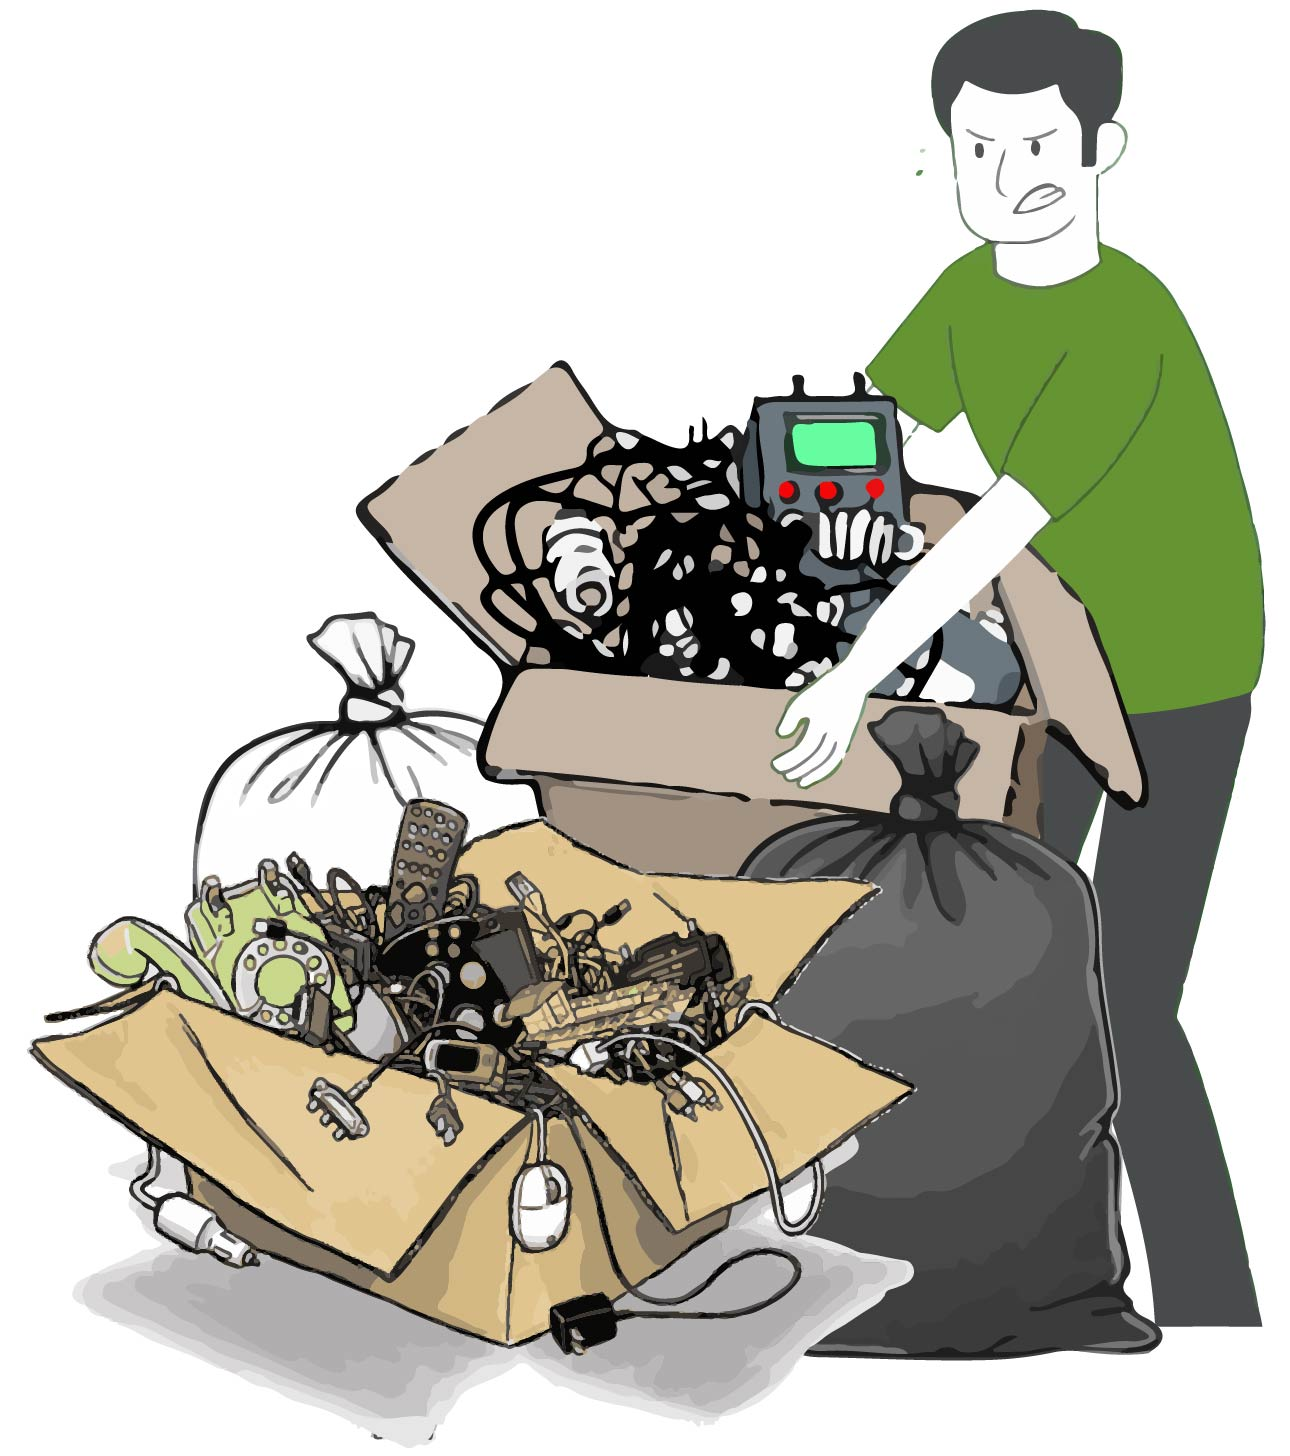 Quick Junk Removal Services in Troutdale, OR